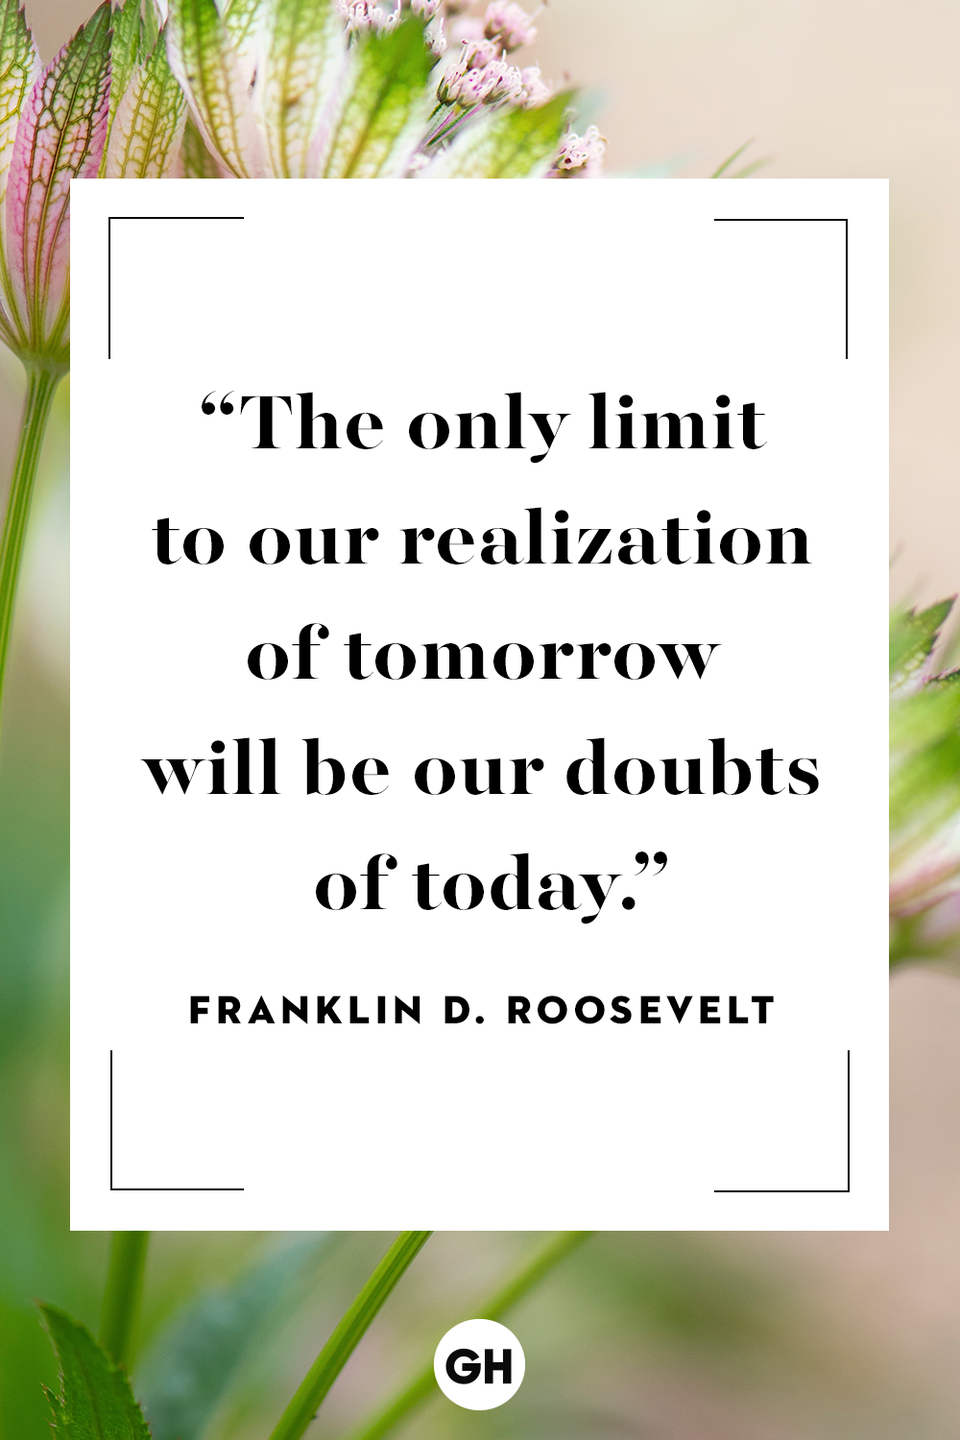 <p>The only limit to our realization of tomorrow will be our doubts of today.</p>